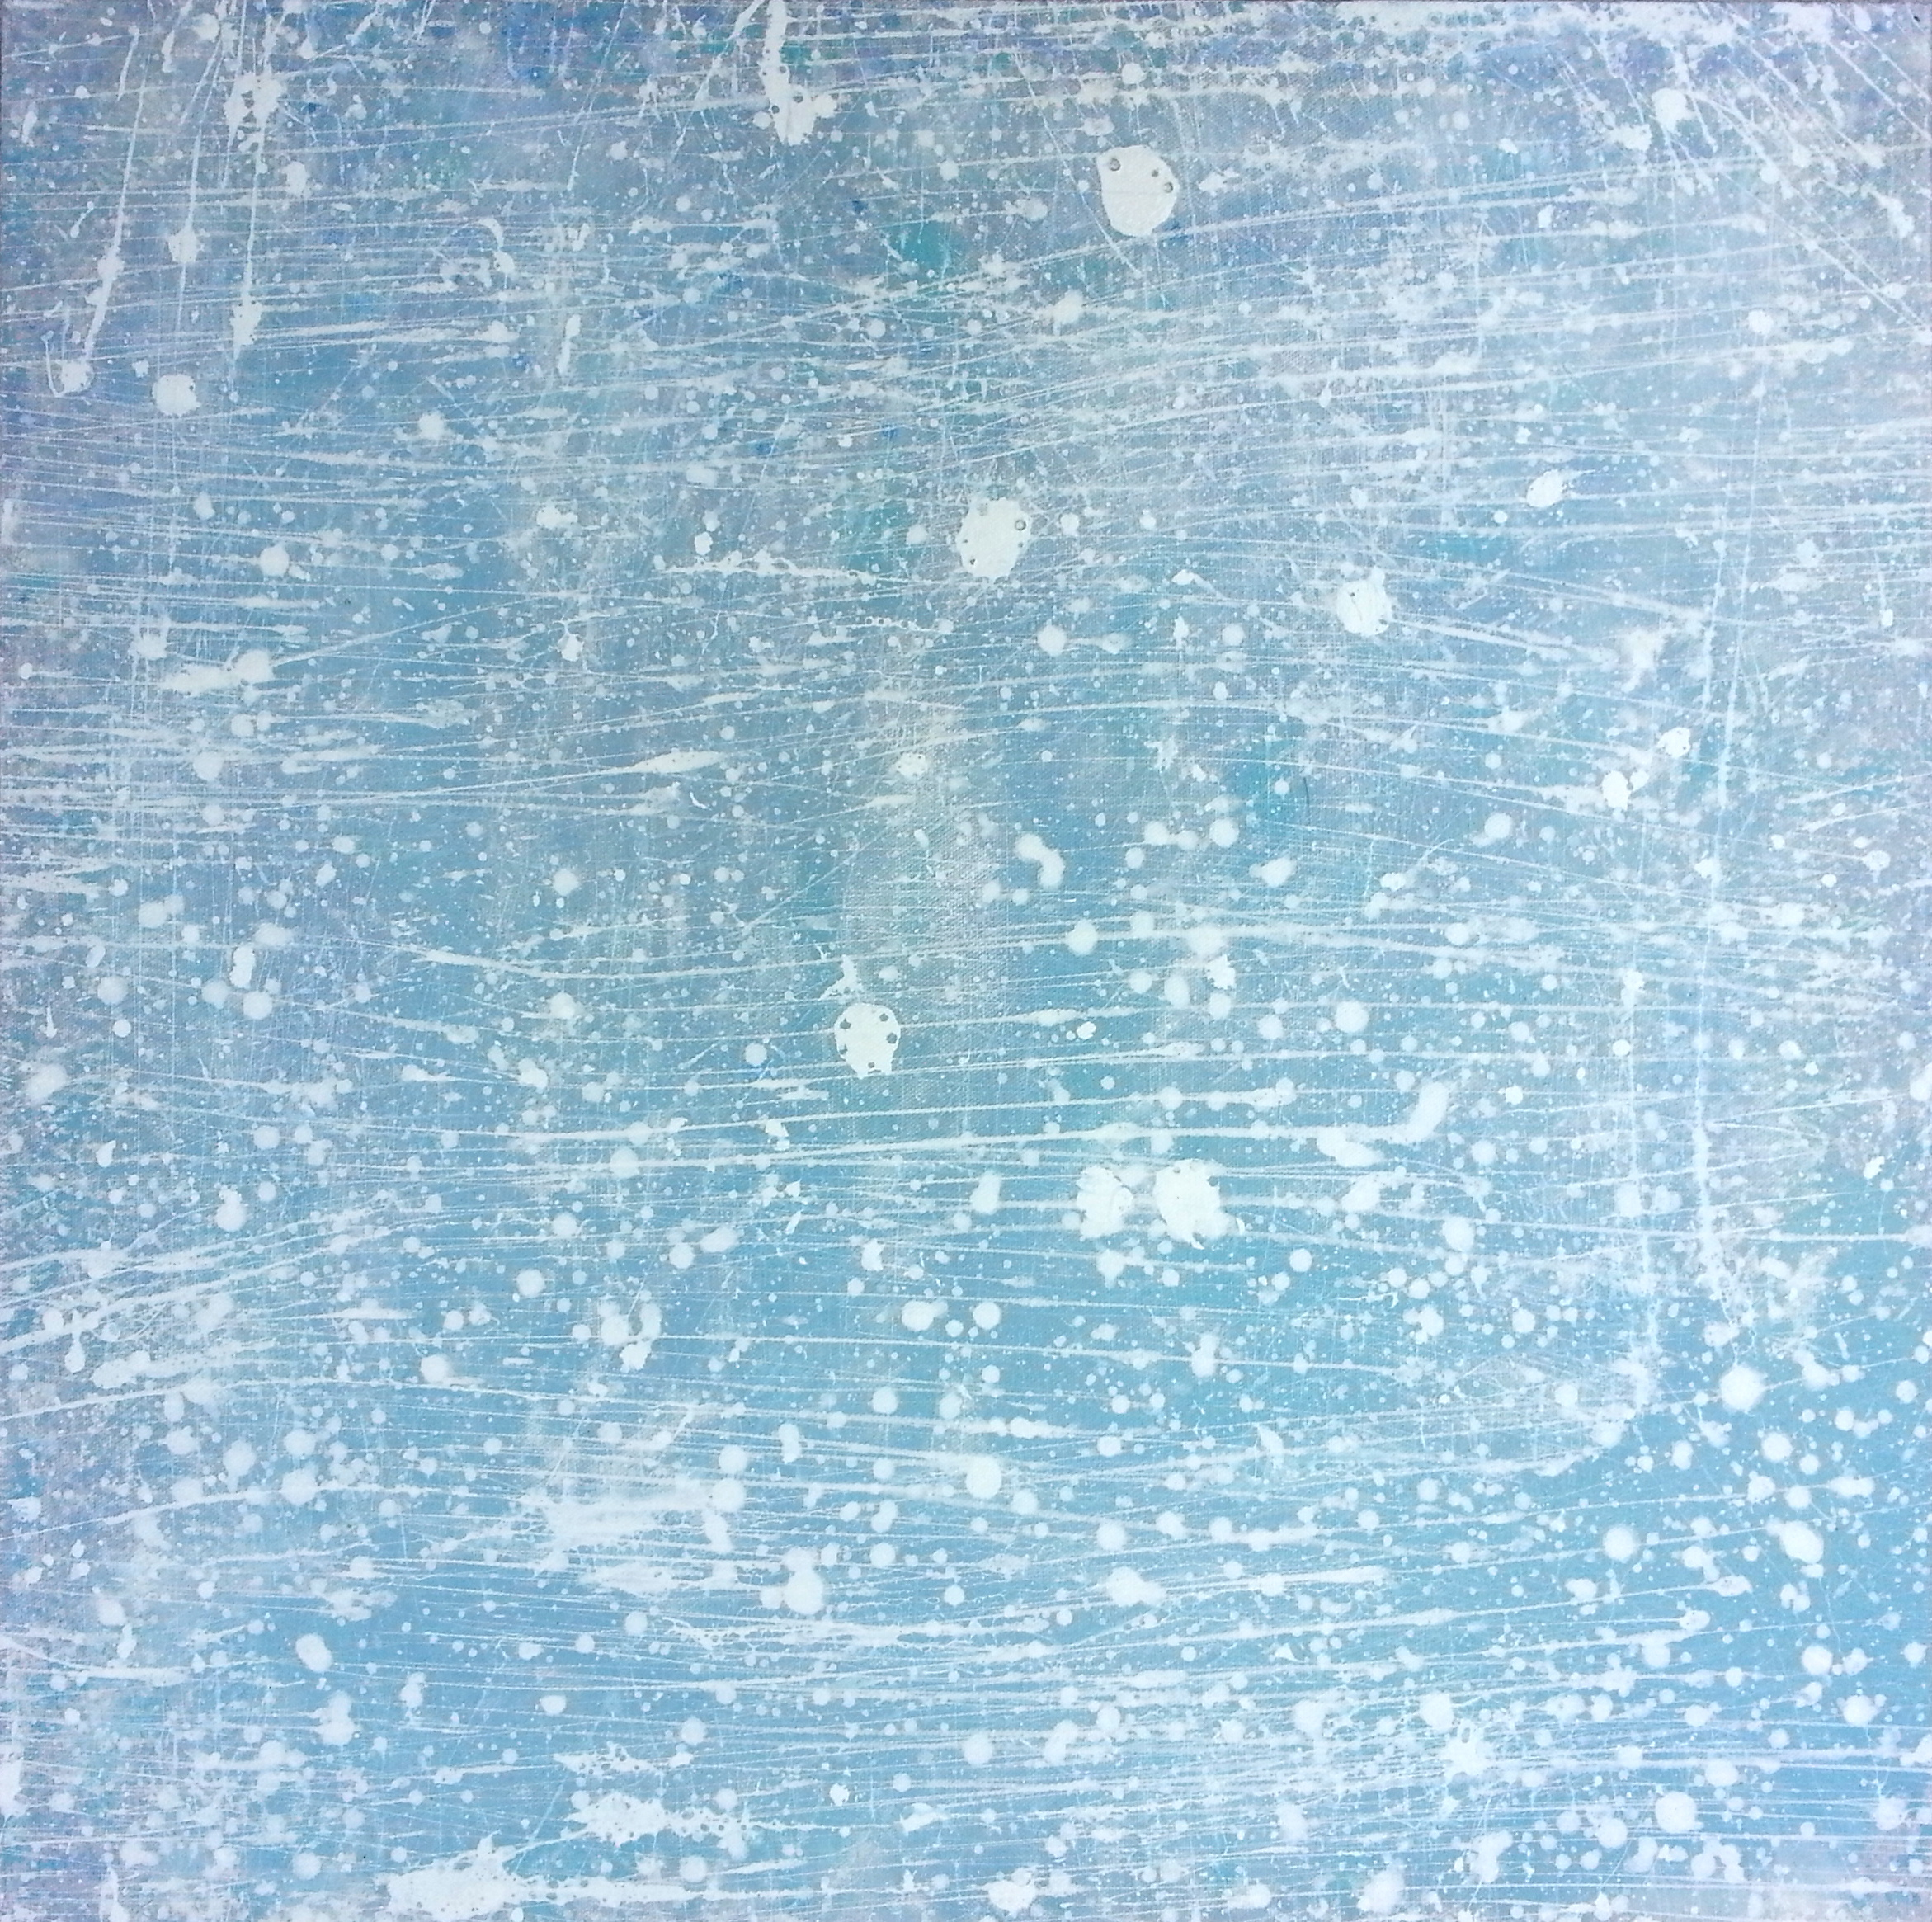 Sky Closeup 6,2014 One of a series of nine canvases 24 x 24 inches